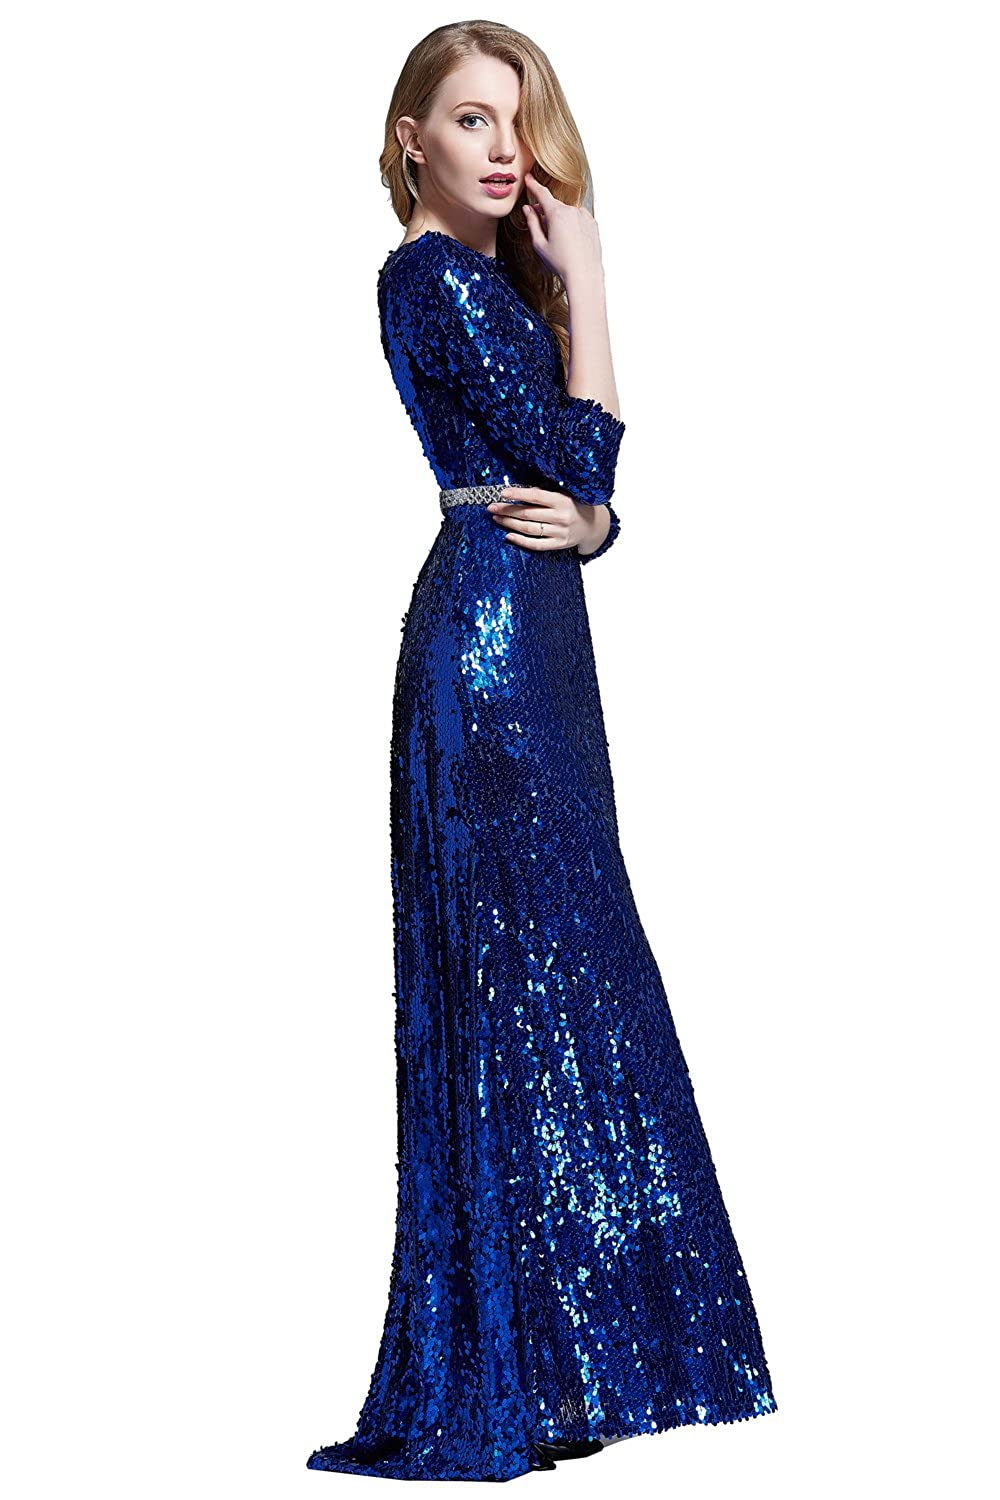 Amazon.com: Sexy Open back blue sequin evening party prom Maxi Women Dress 10: Clothing